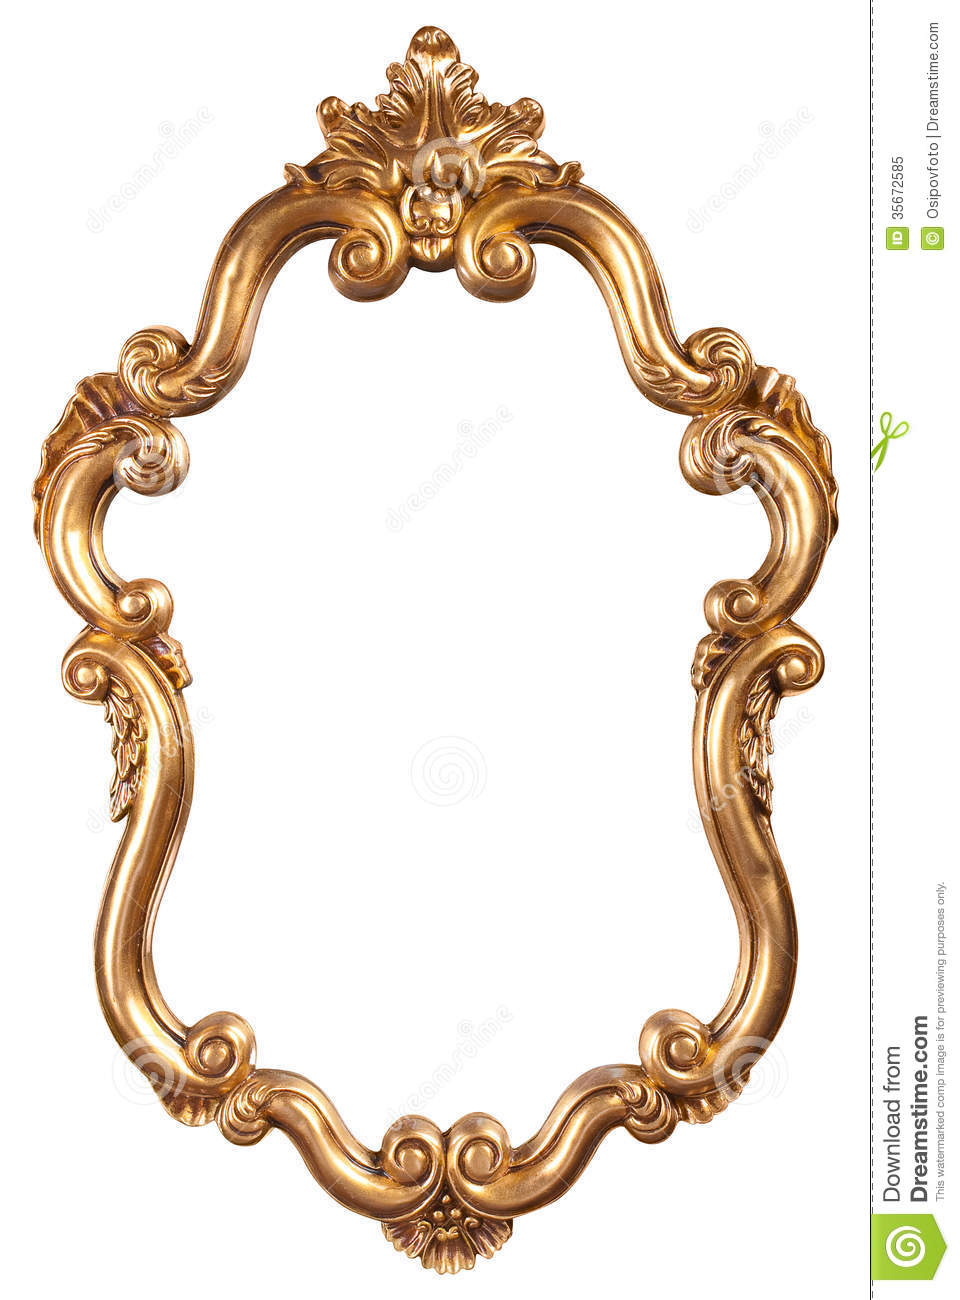 Vintage Frame Royalty Free Stock Photo  Image: 35672585